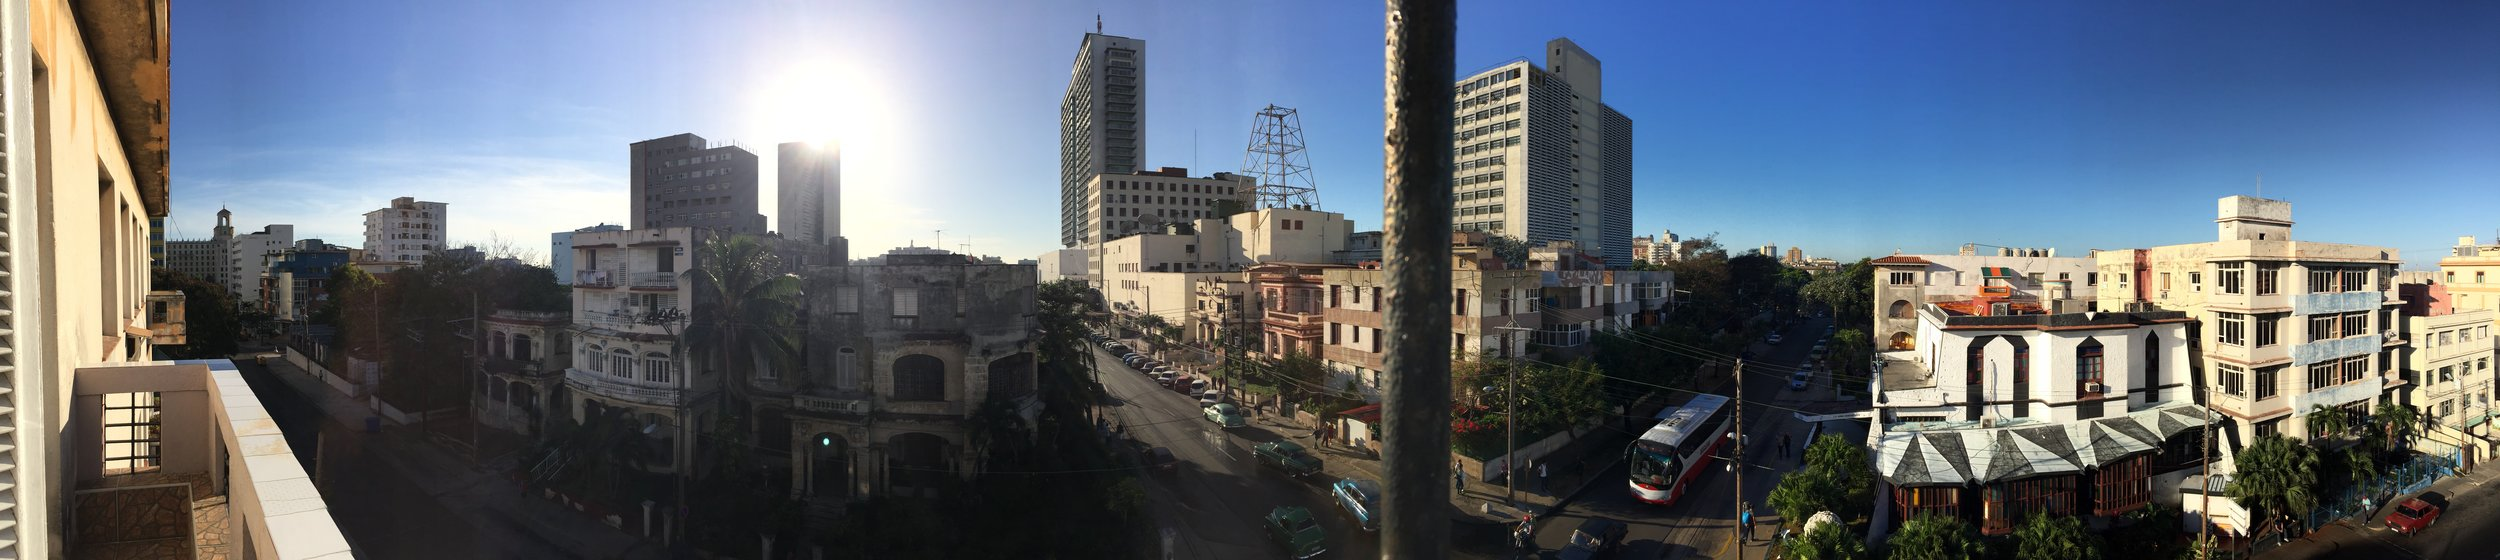 A panorama of Havana as seen from the balcony of our room in Vedado.